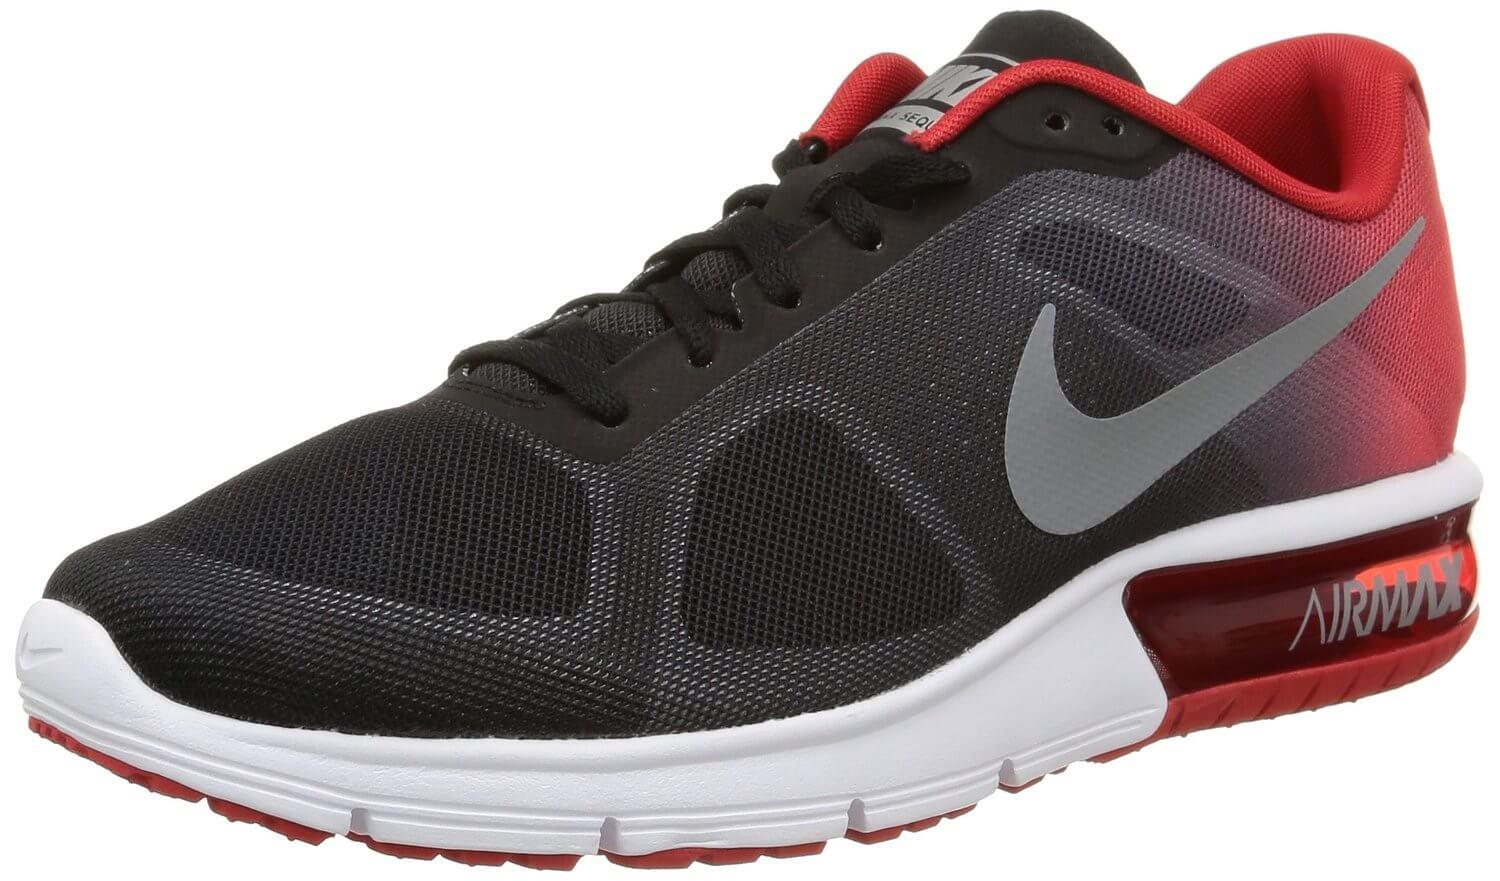 The Nike Air Max Sequent is a stylish and functional addition to the Nike product line.